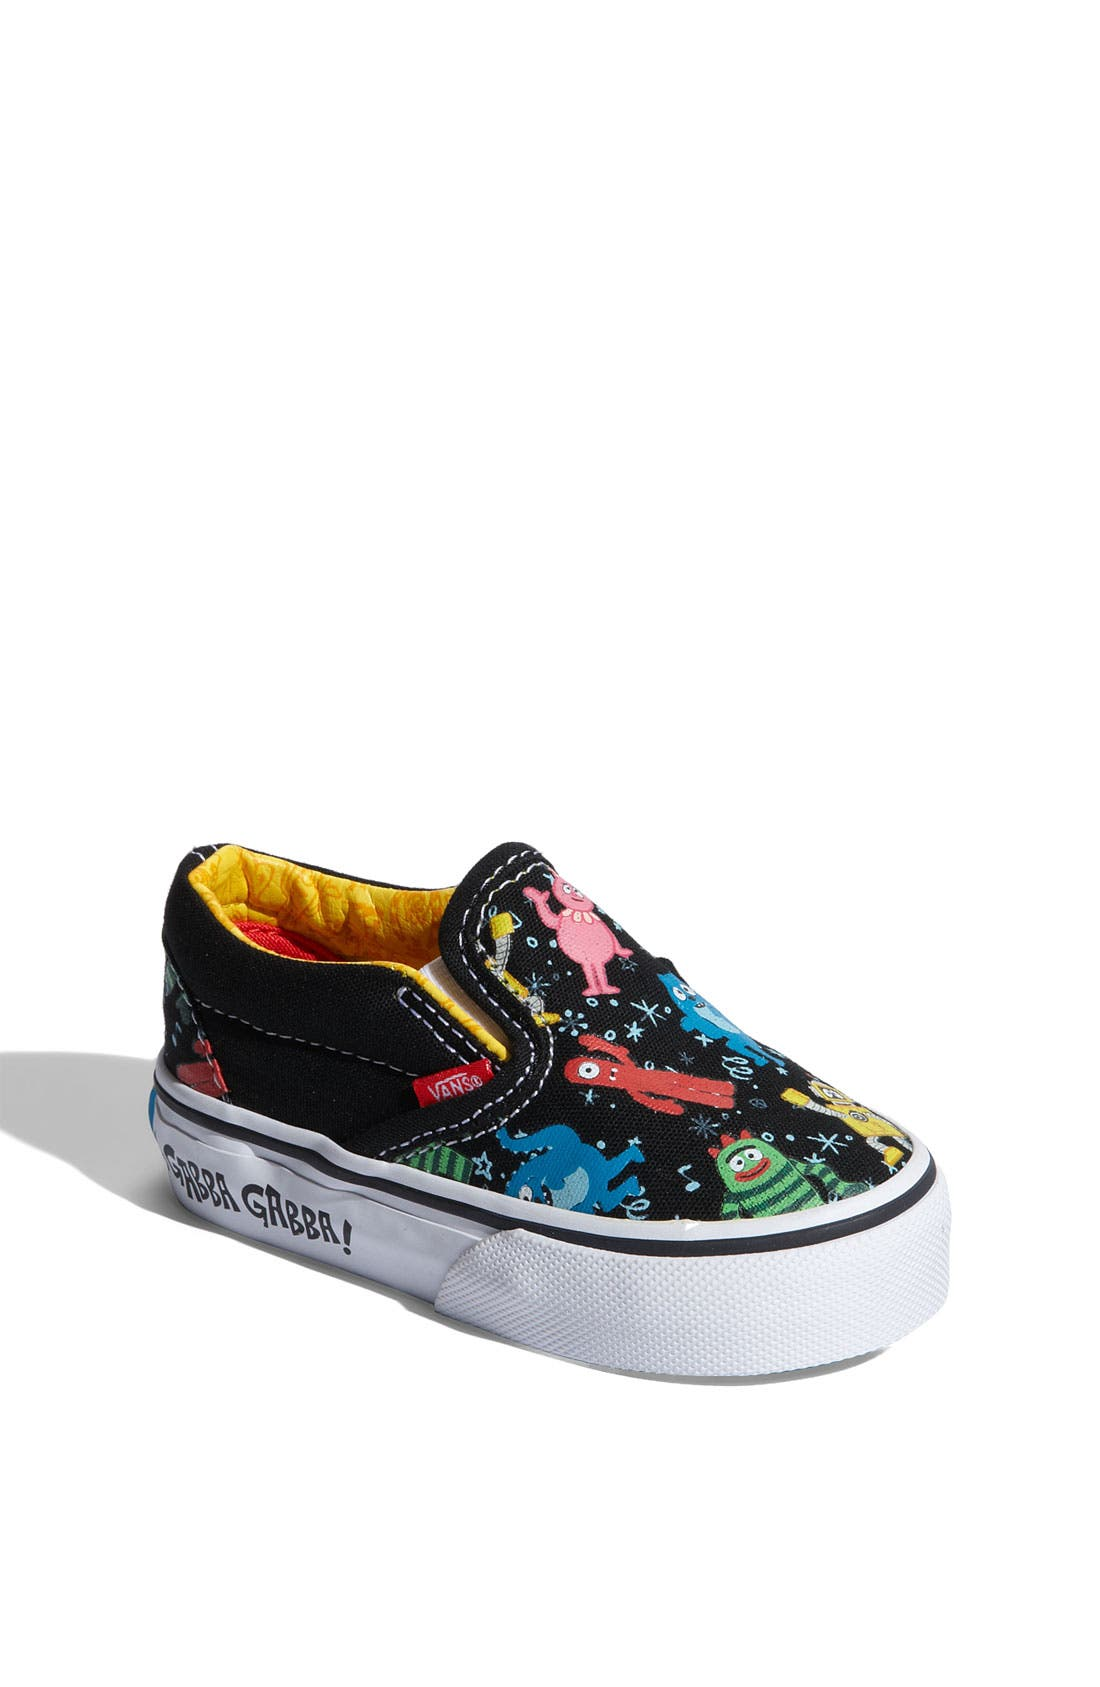 Alternate Image 1 Selected - Vans 'Classic' Print Slip-On (Walker, Toddler & Little Kid)